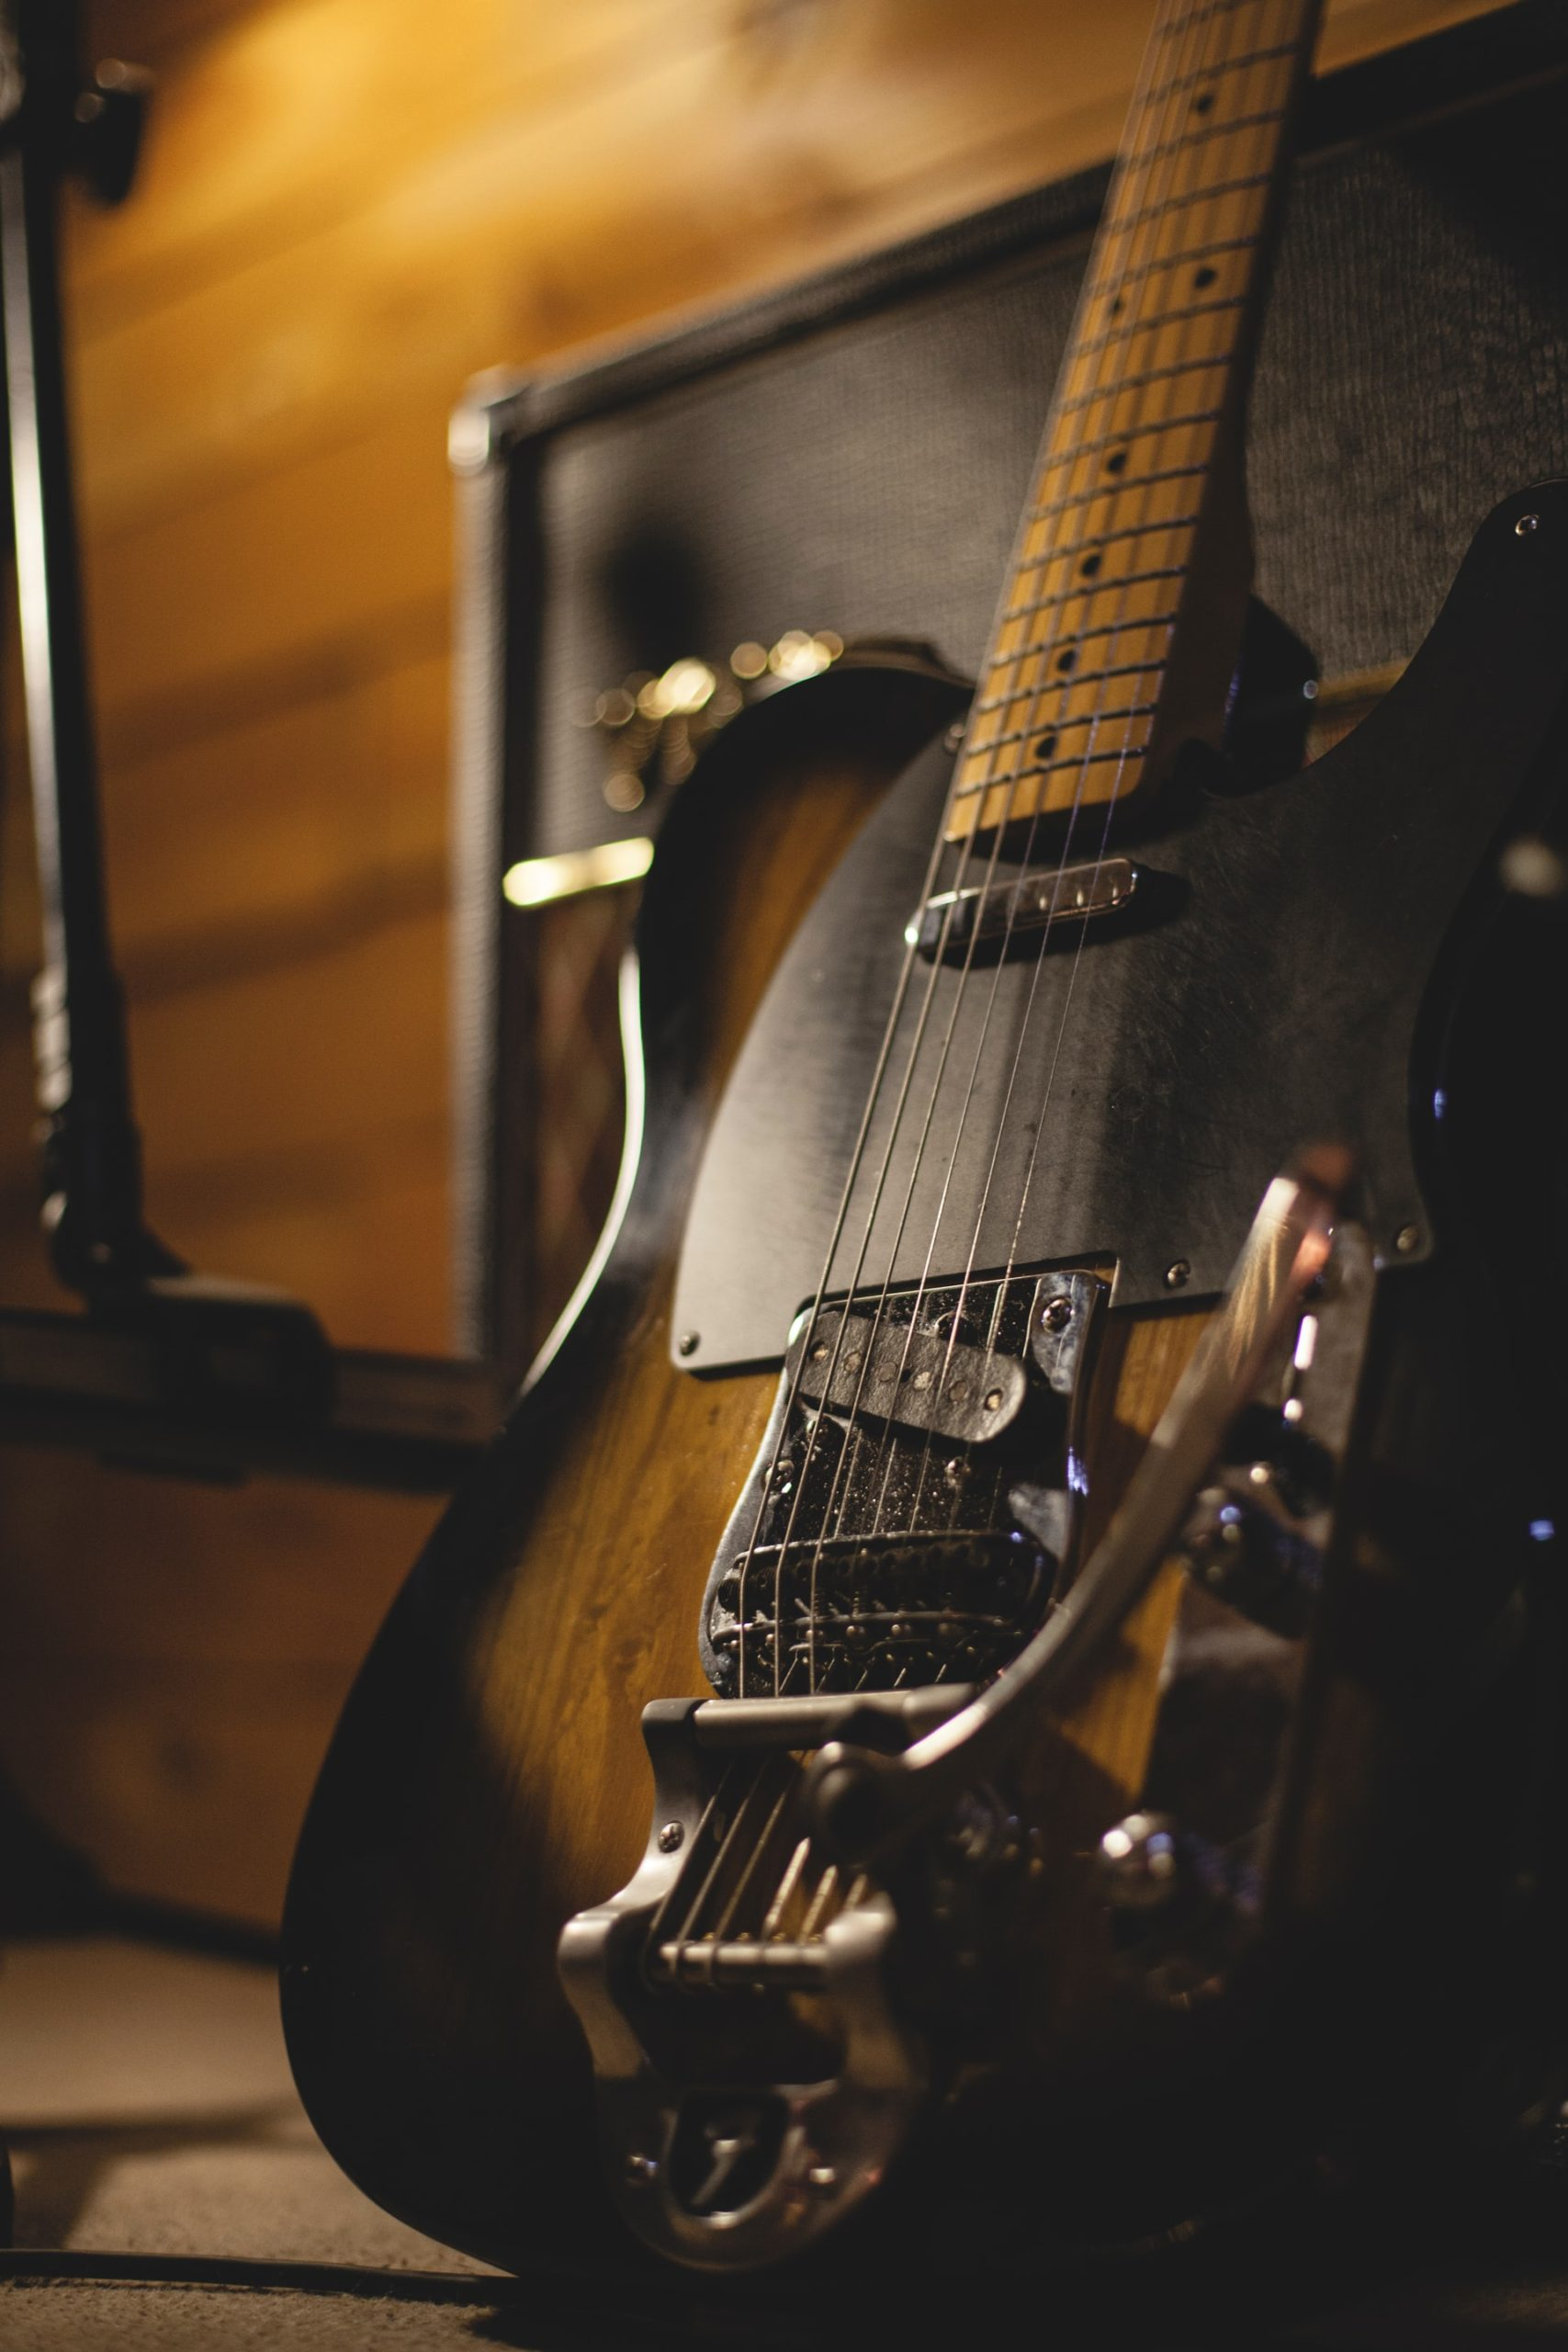 Popular Musical Instruments Article Image